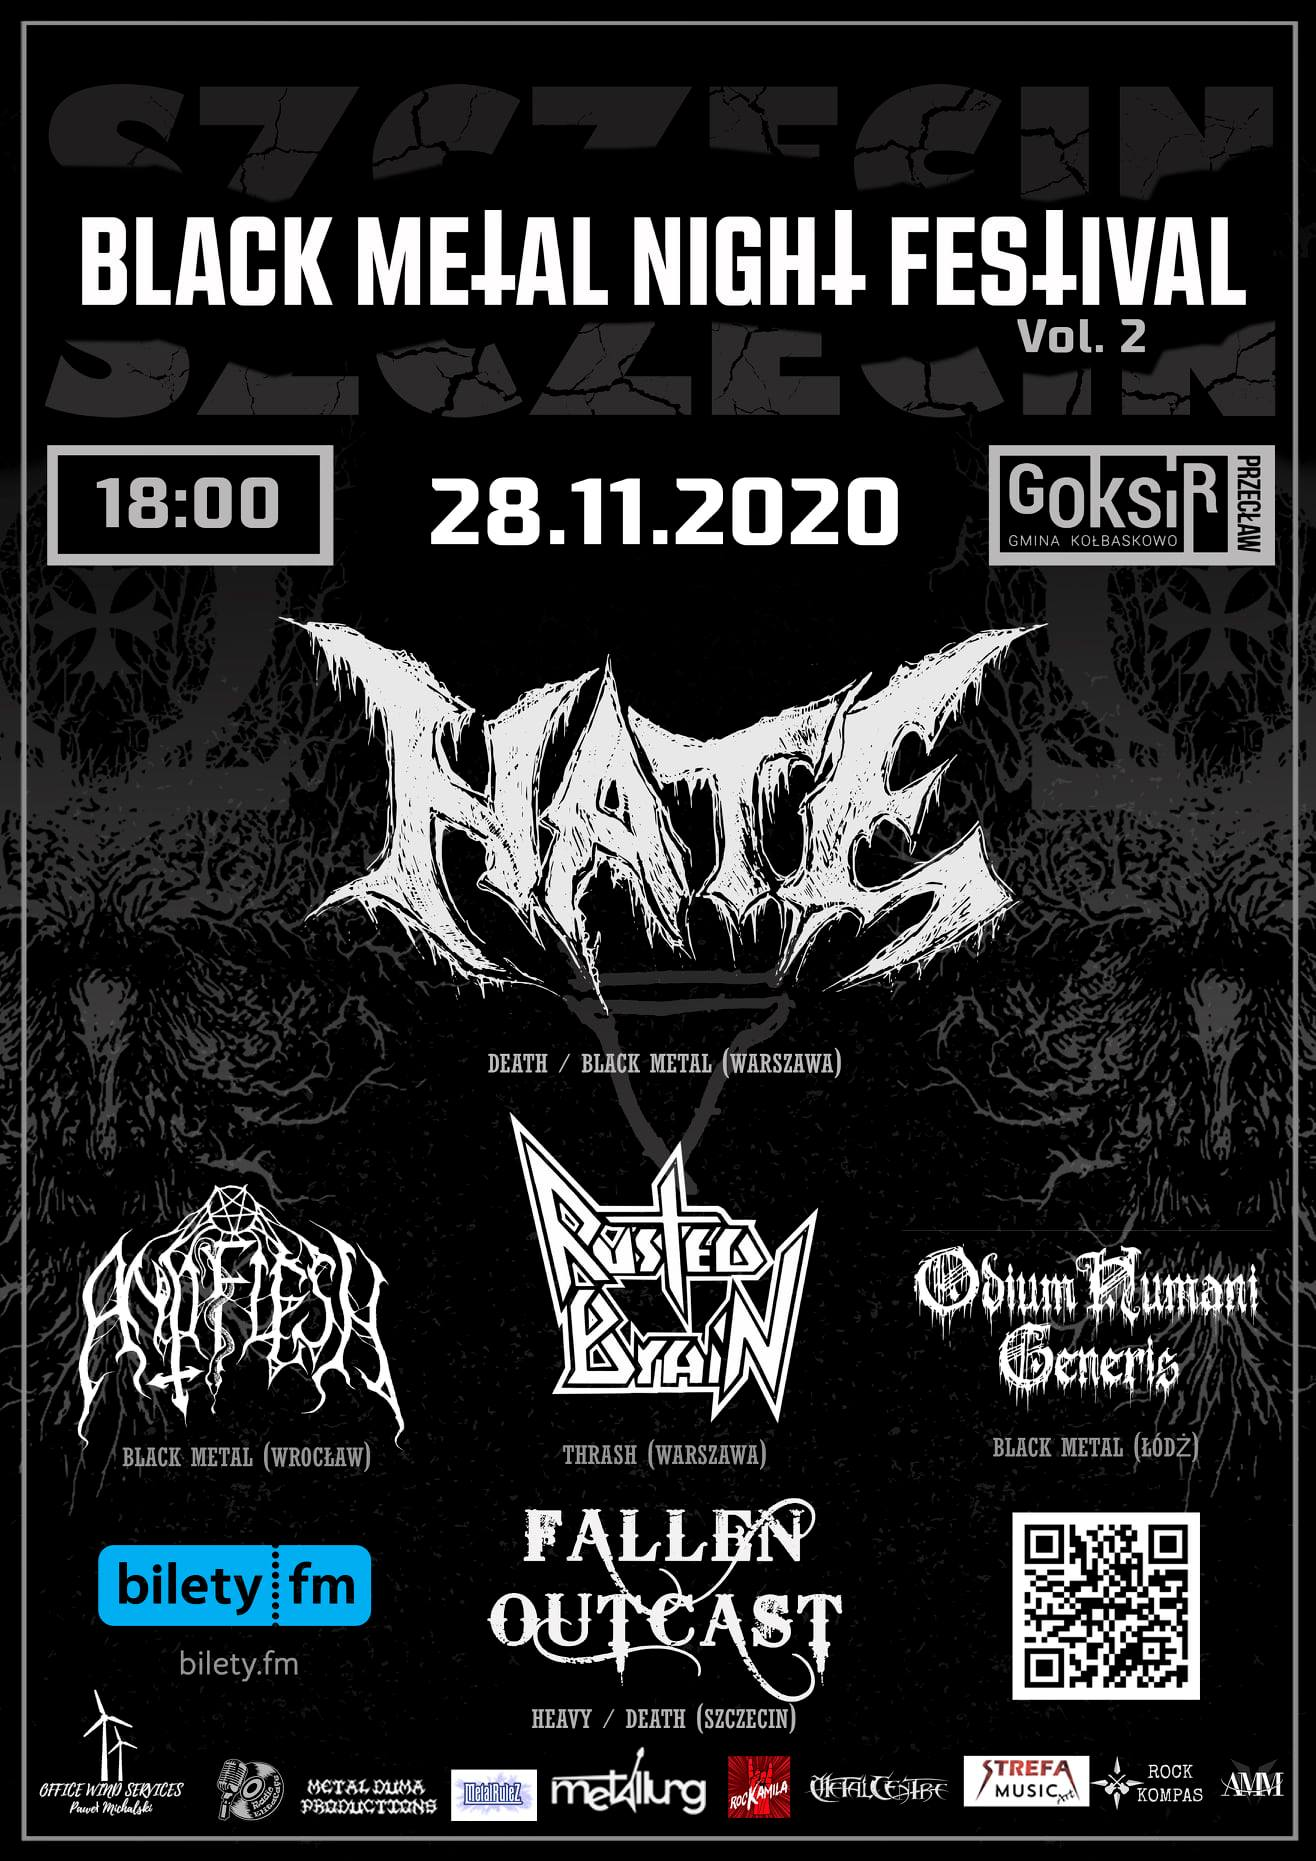 Black Metal Night Festival Szczecin vol.2